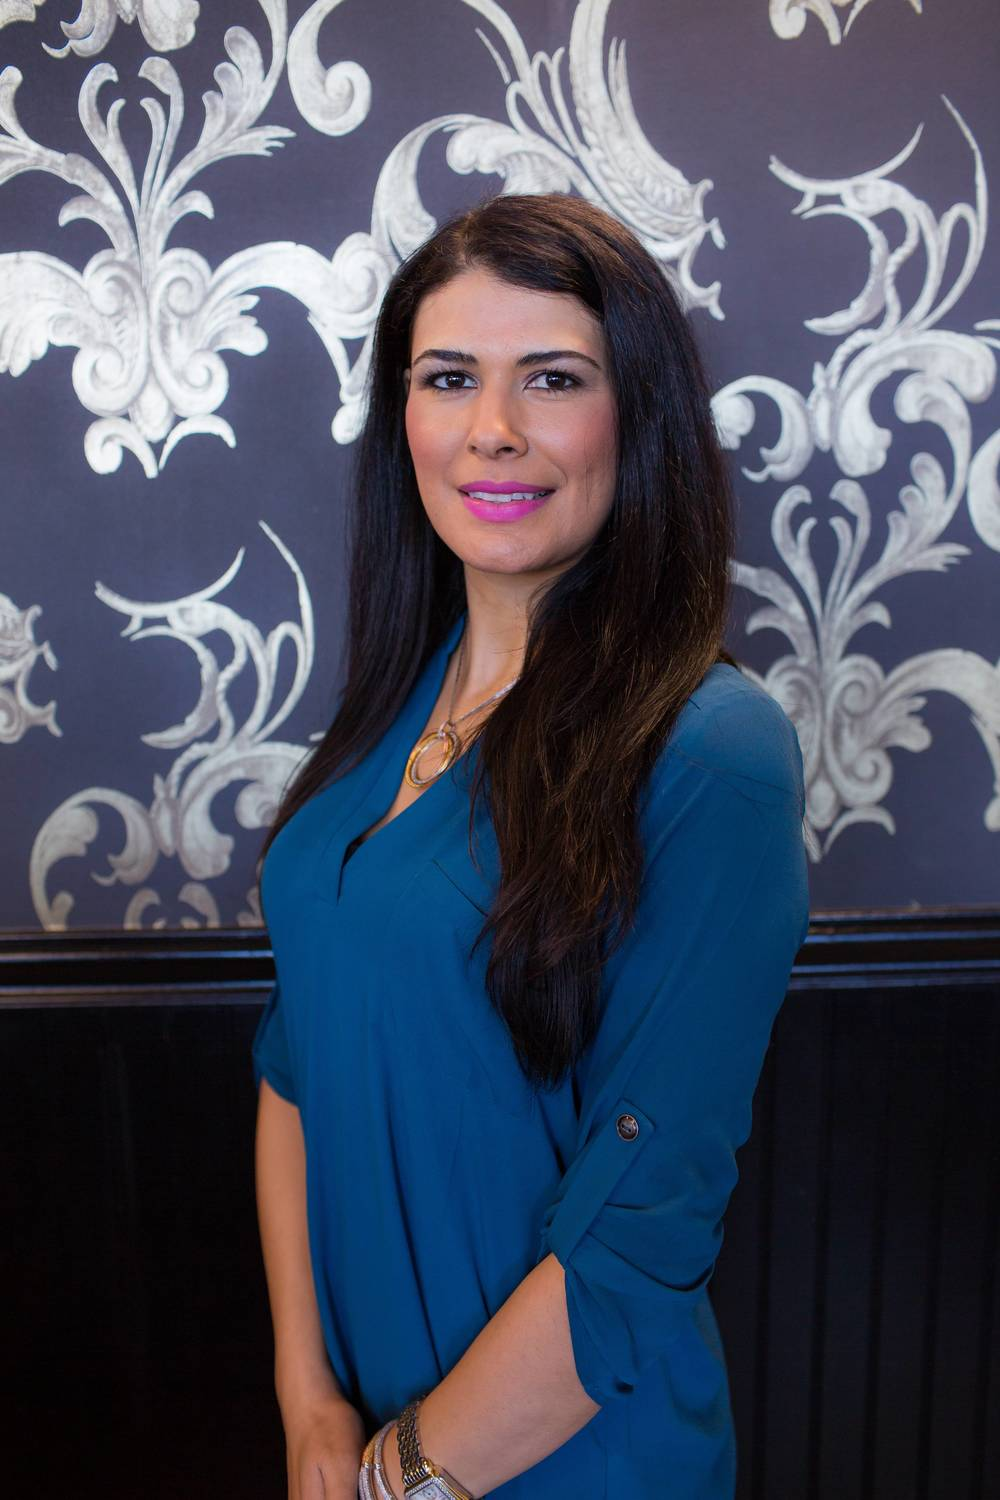 Rebecca Samman, Owner and Certified colon hydrotherapist